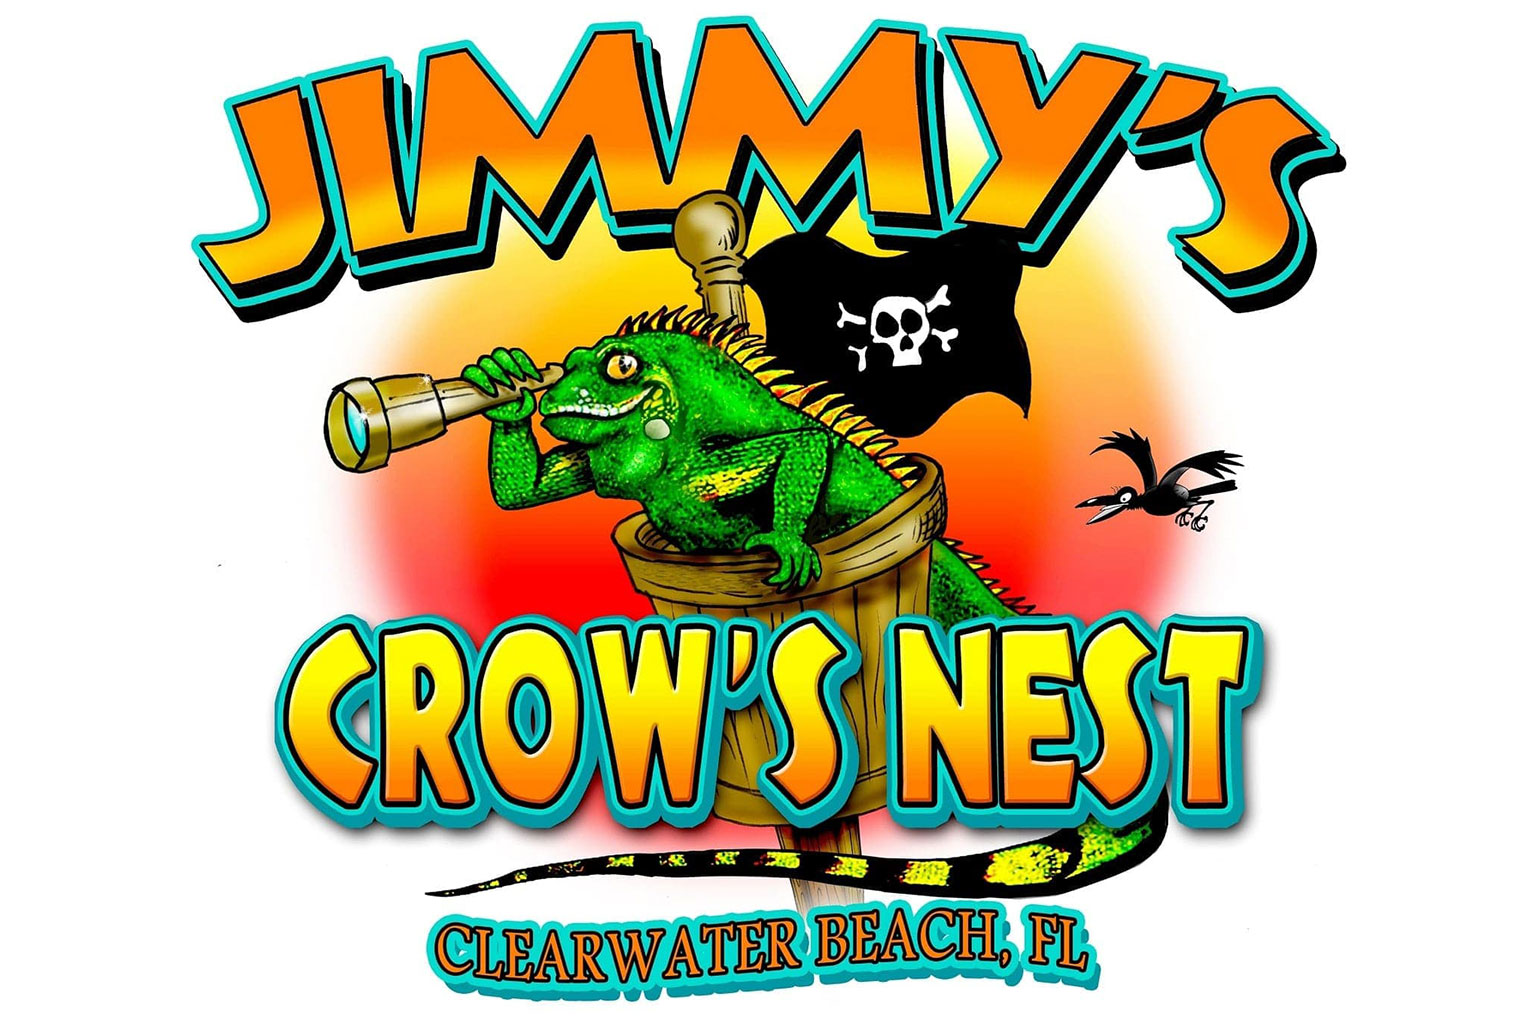 Jimmys Crows Nest Logo